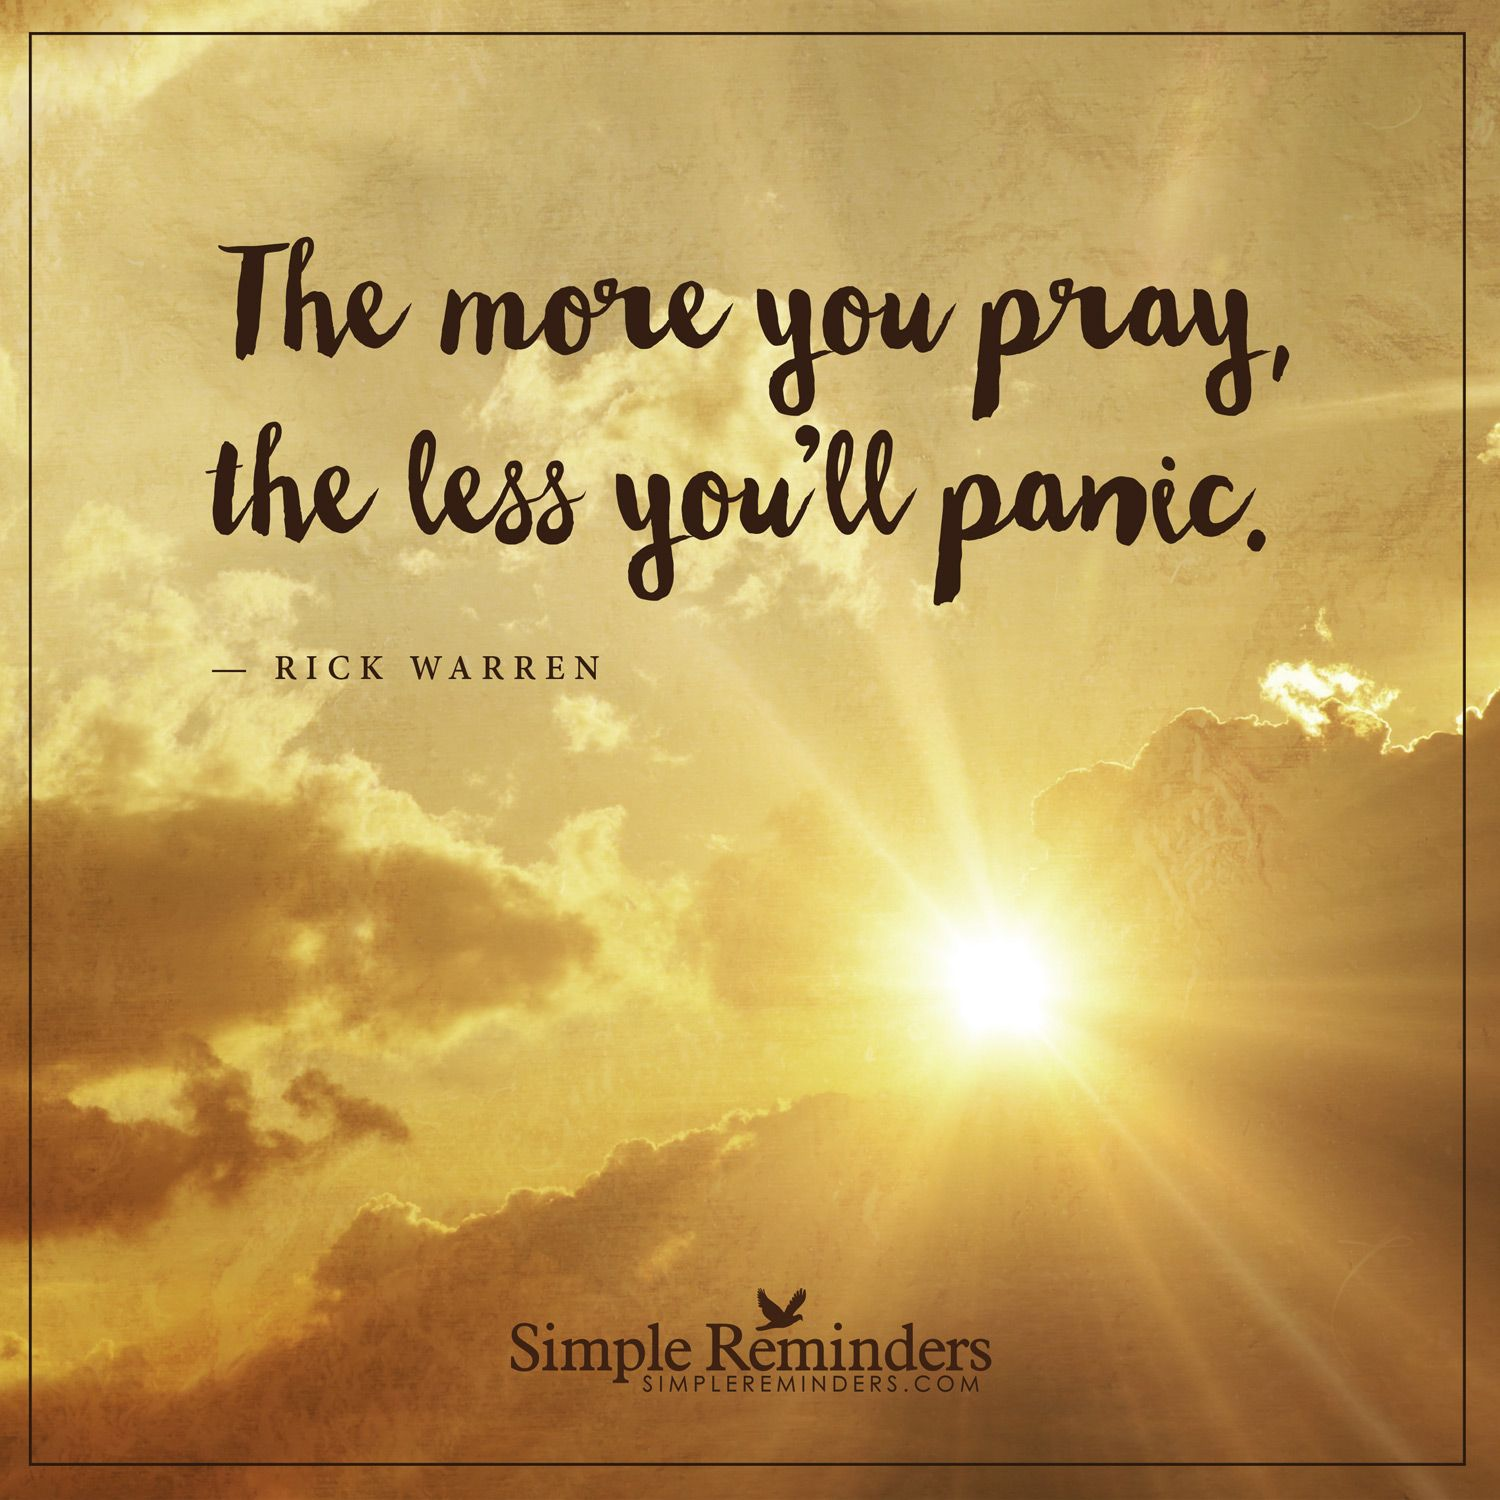 Prayer Quote Pray More The More You Pray The Less You'll Panic Rick Warren